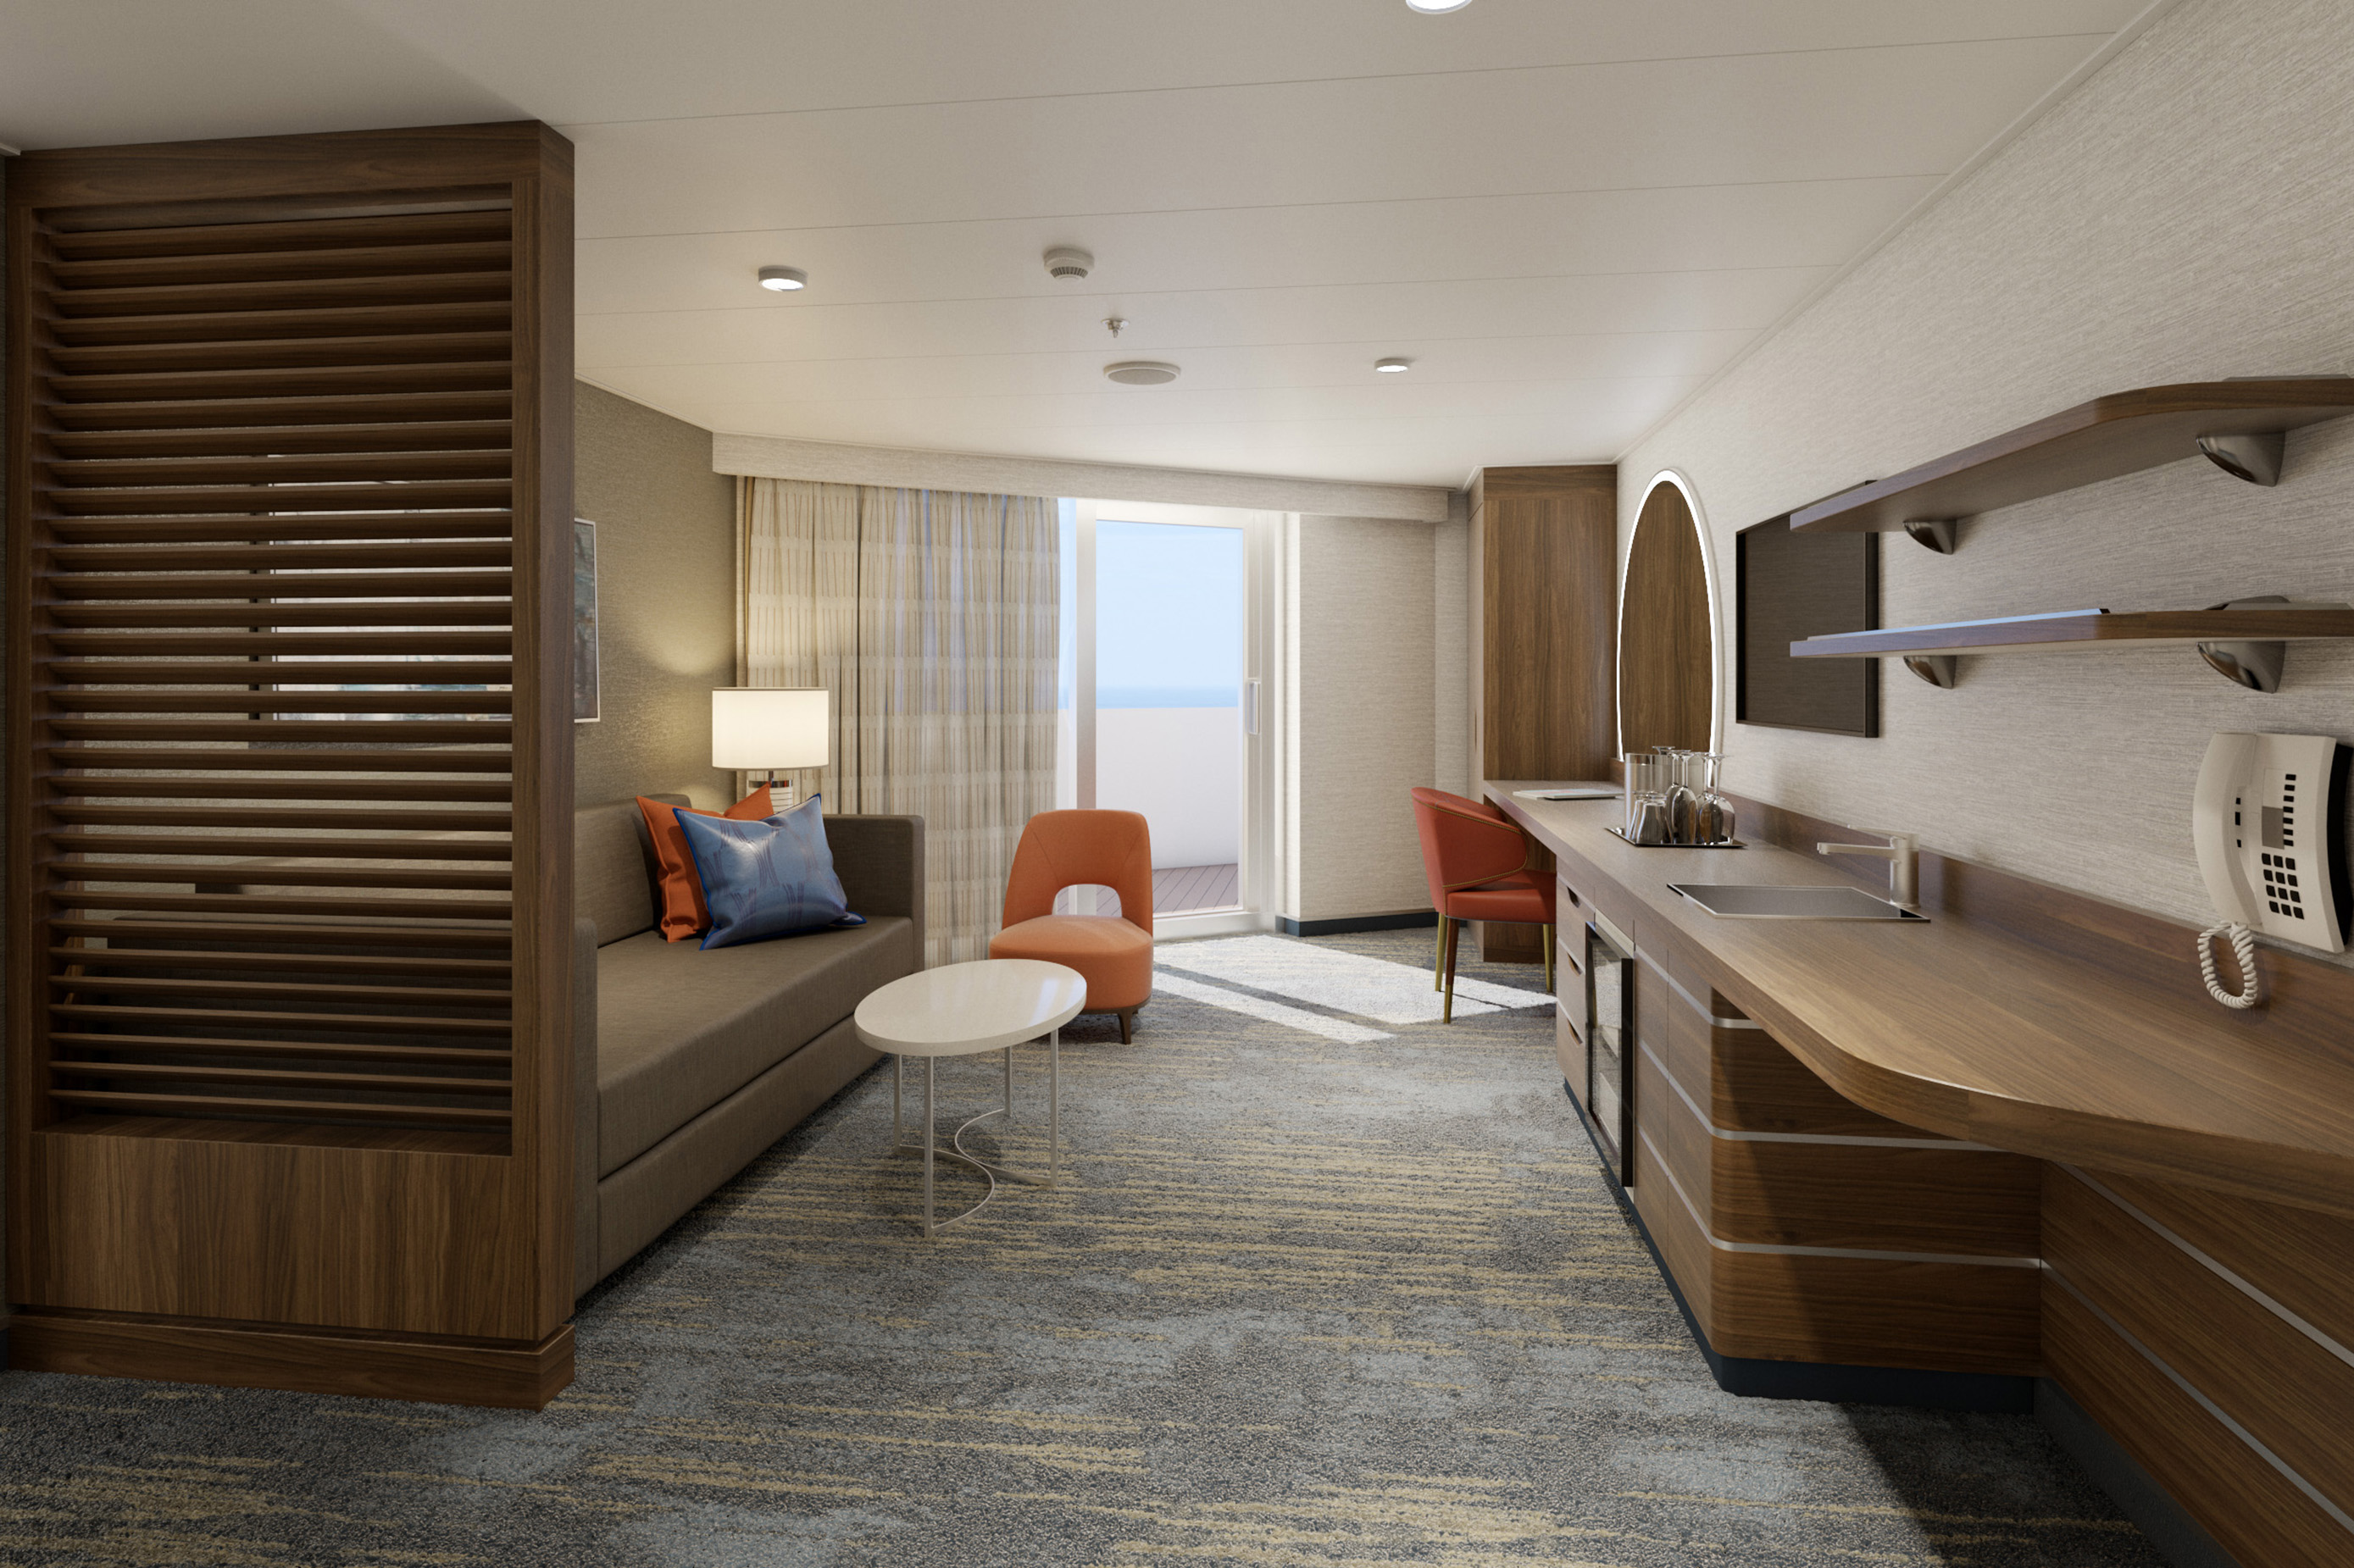 Carnival Mardi Gras to Debut Premium 'Carnival Excel' Suites with Select Amenities & New Resort-Style Loft 19 Enclave Access